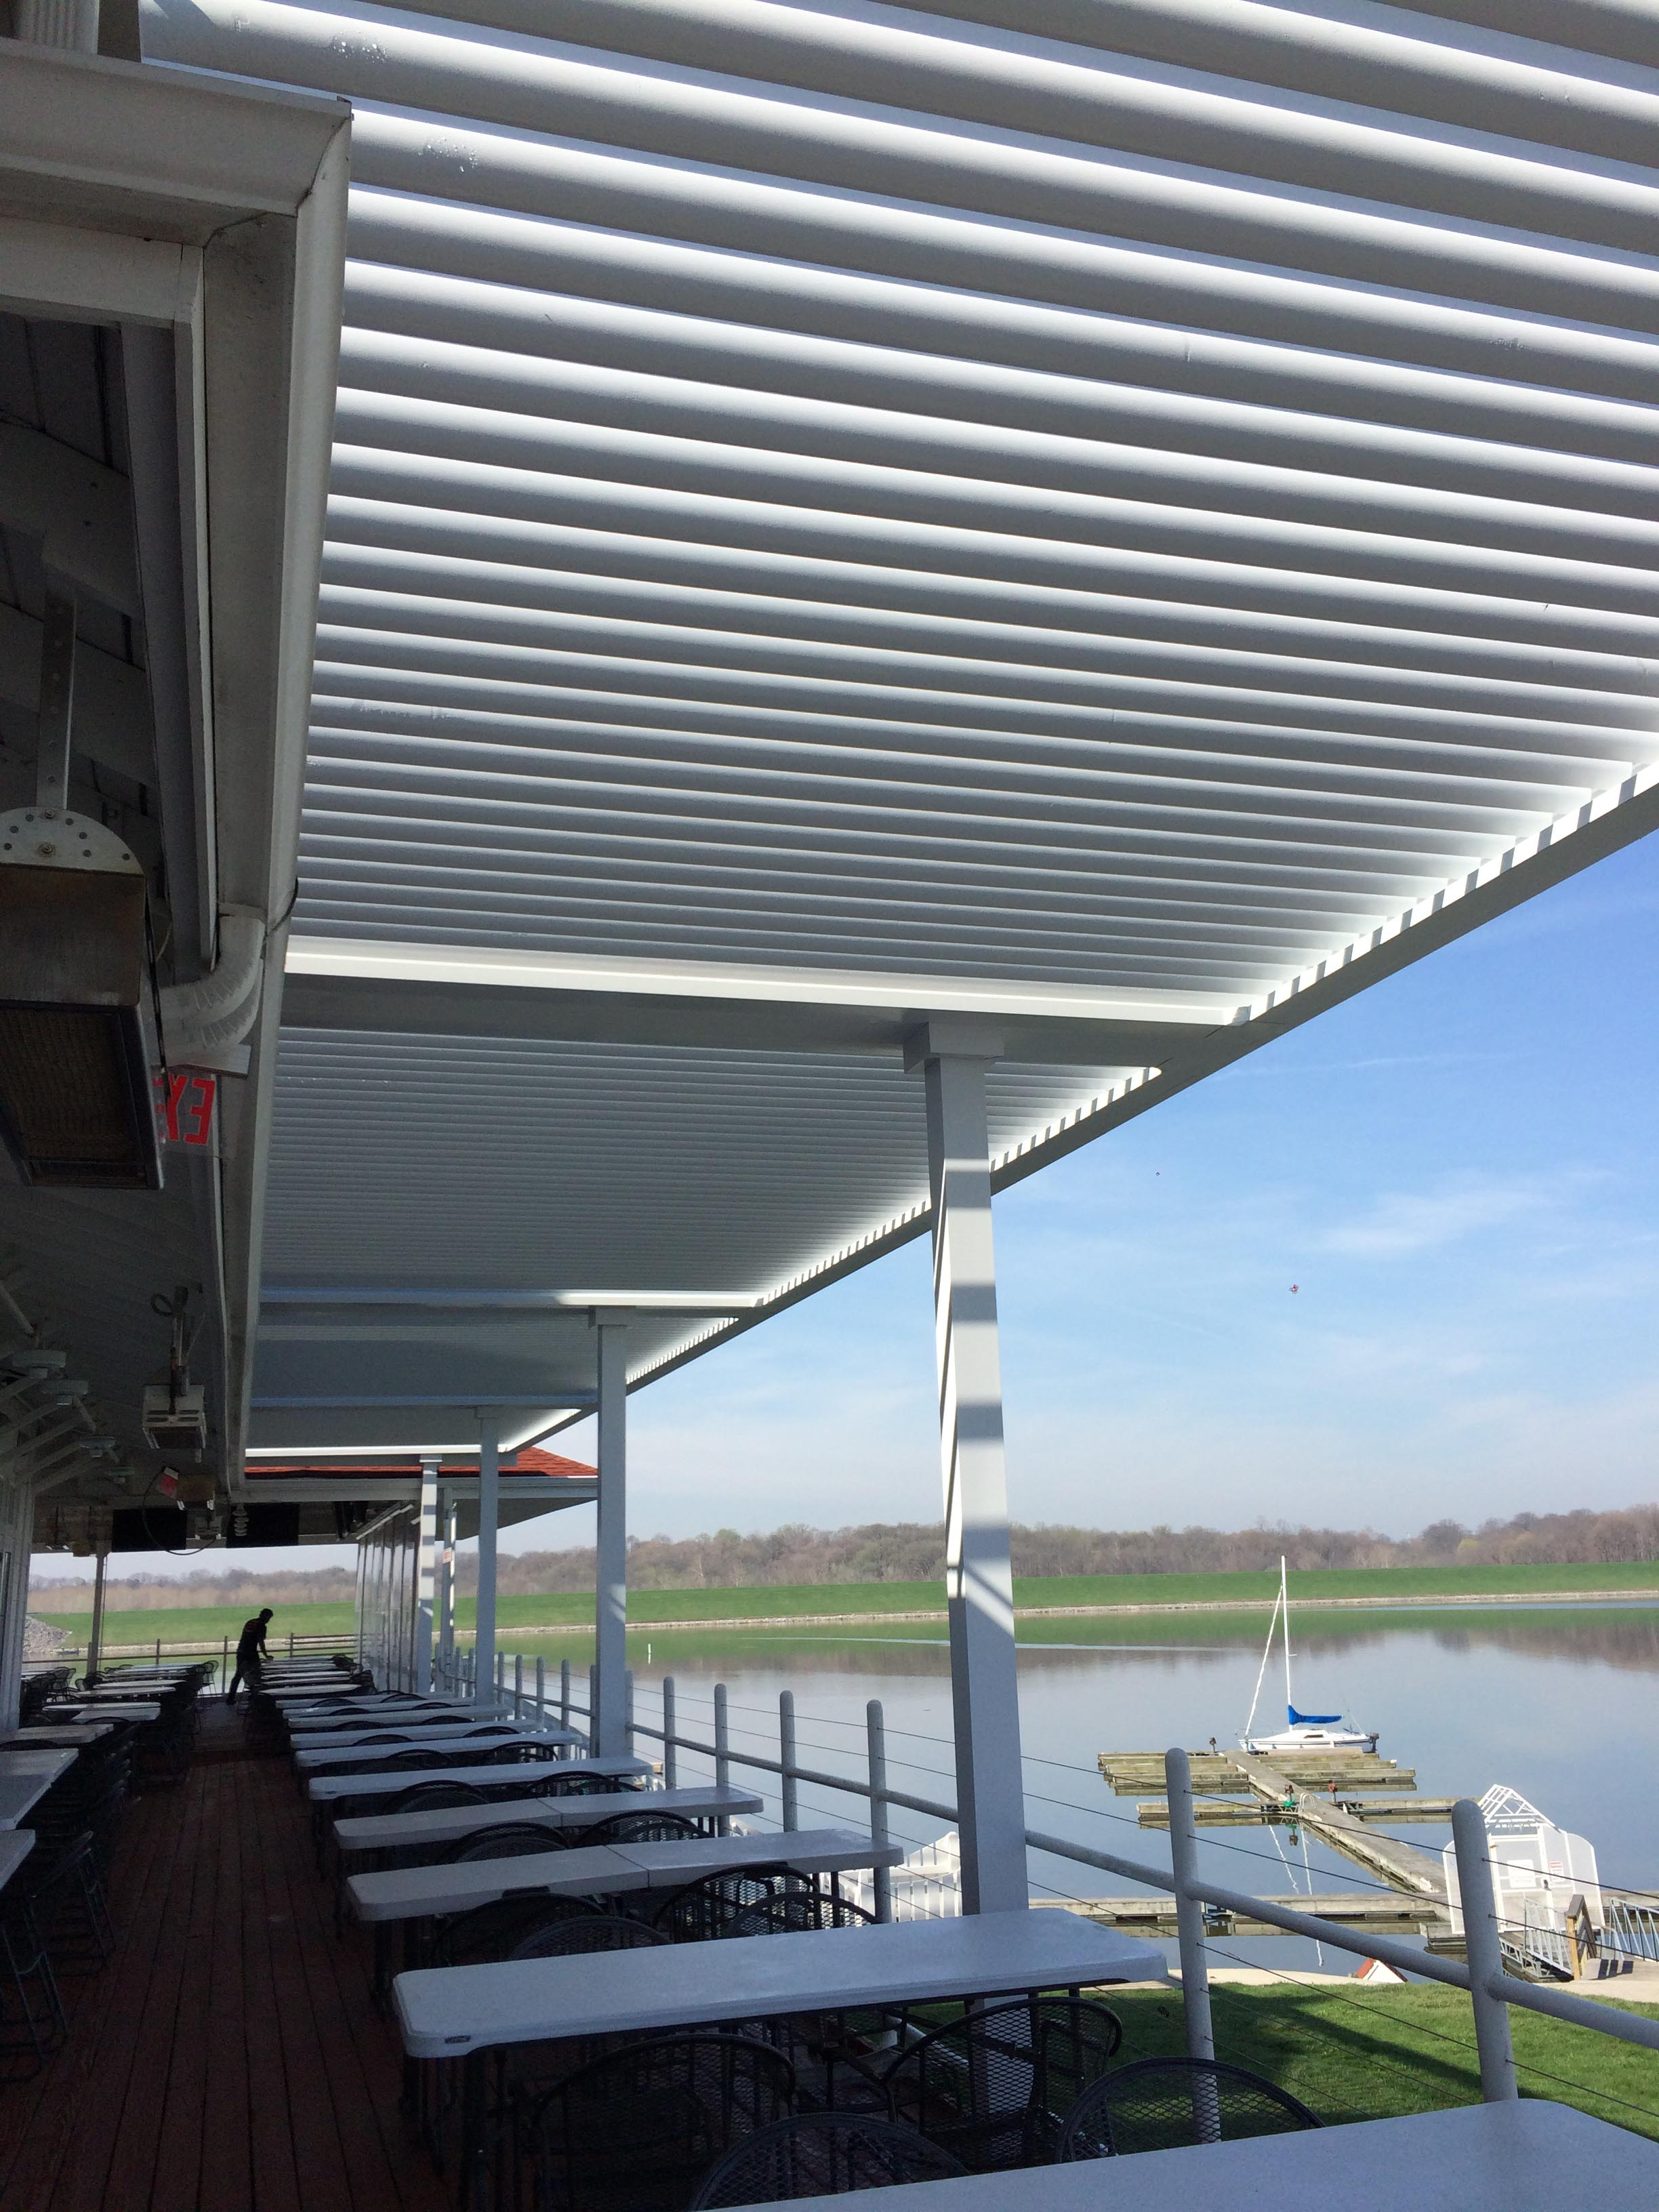 Indianapolis, IN - Rick's Cafe Boatyard - Deck cover - Roof mount